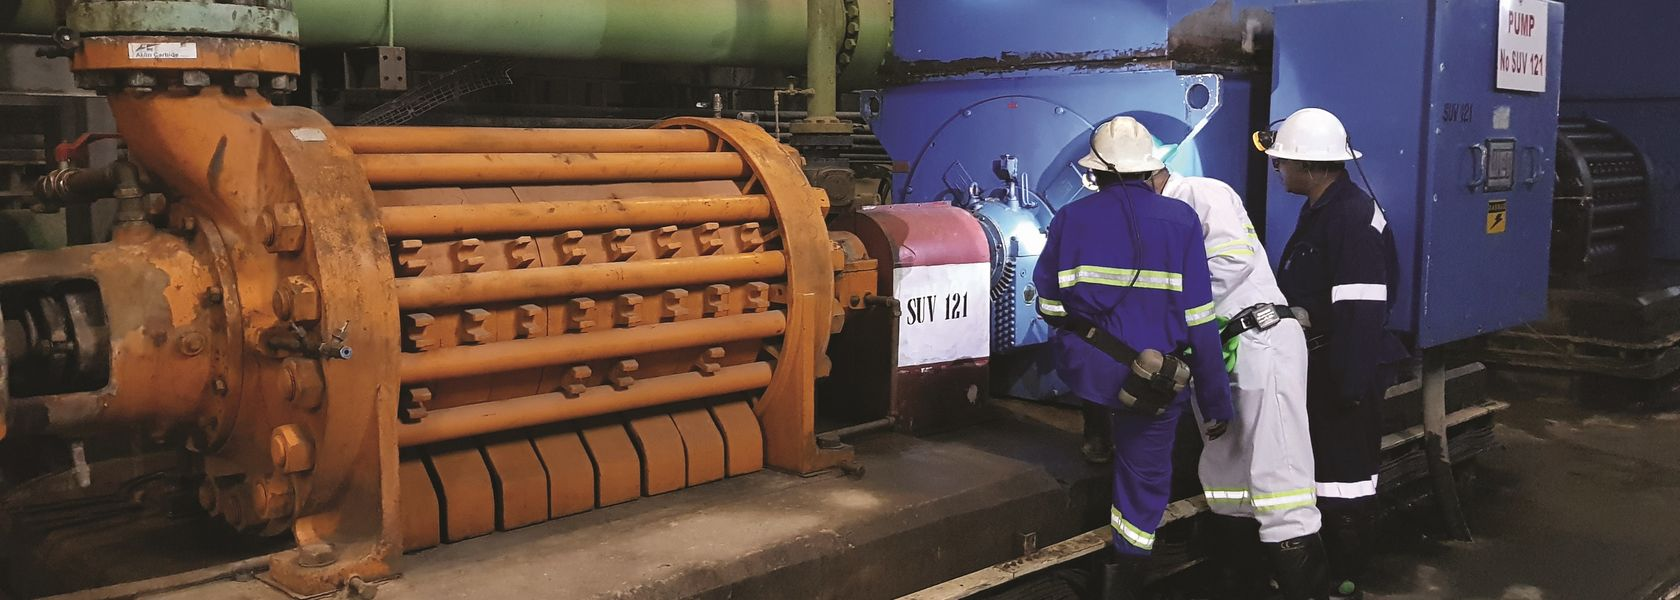 Marthinusen & Coutts rehabilitates motor at Zambian mine